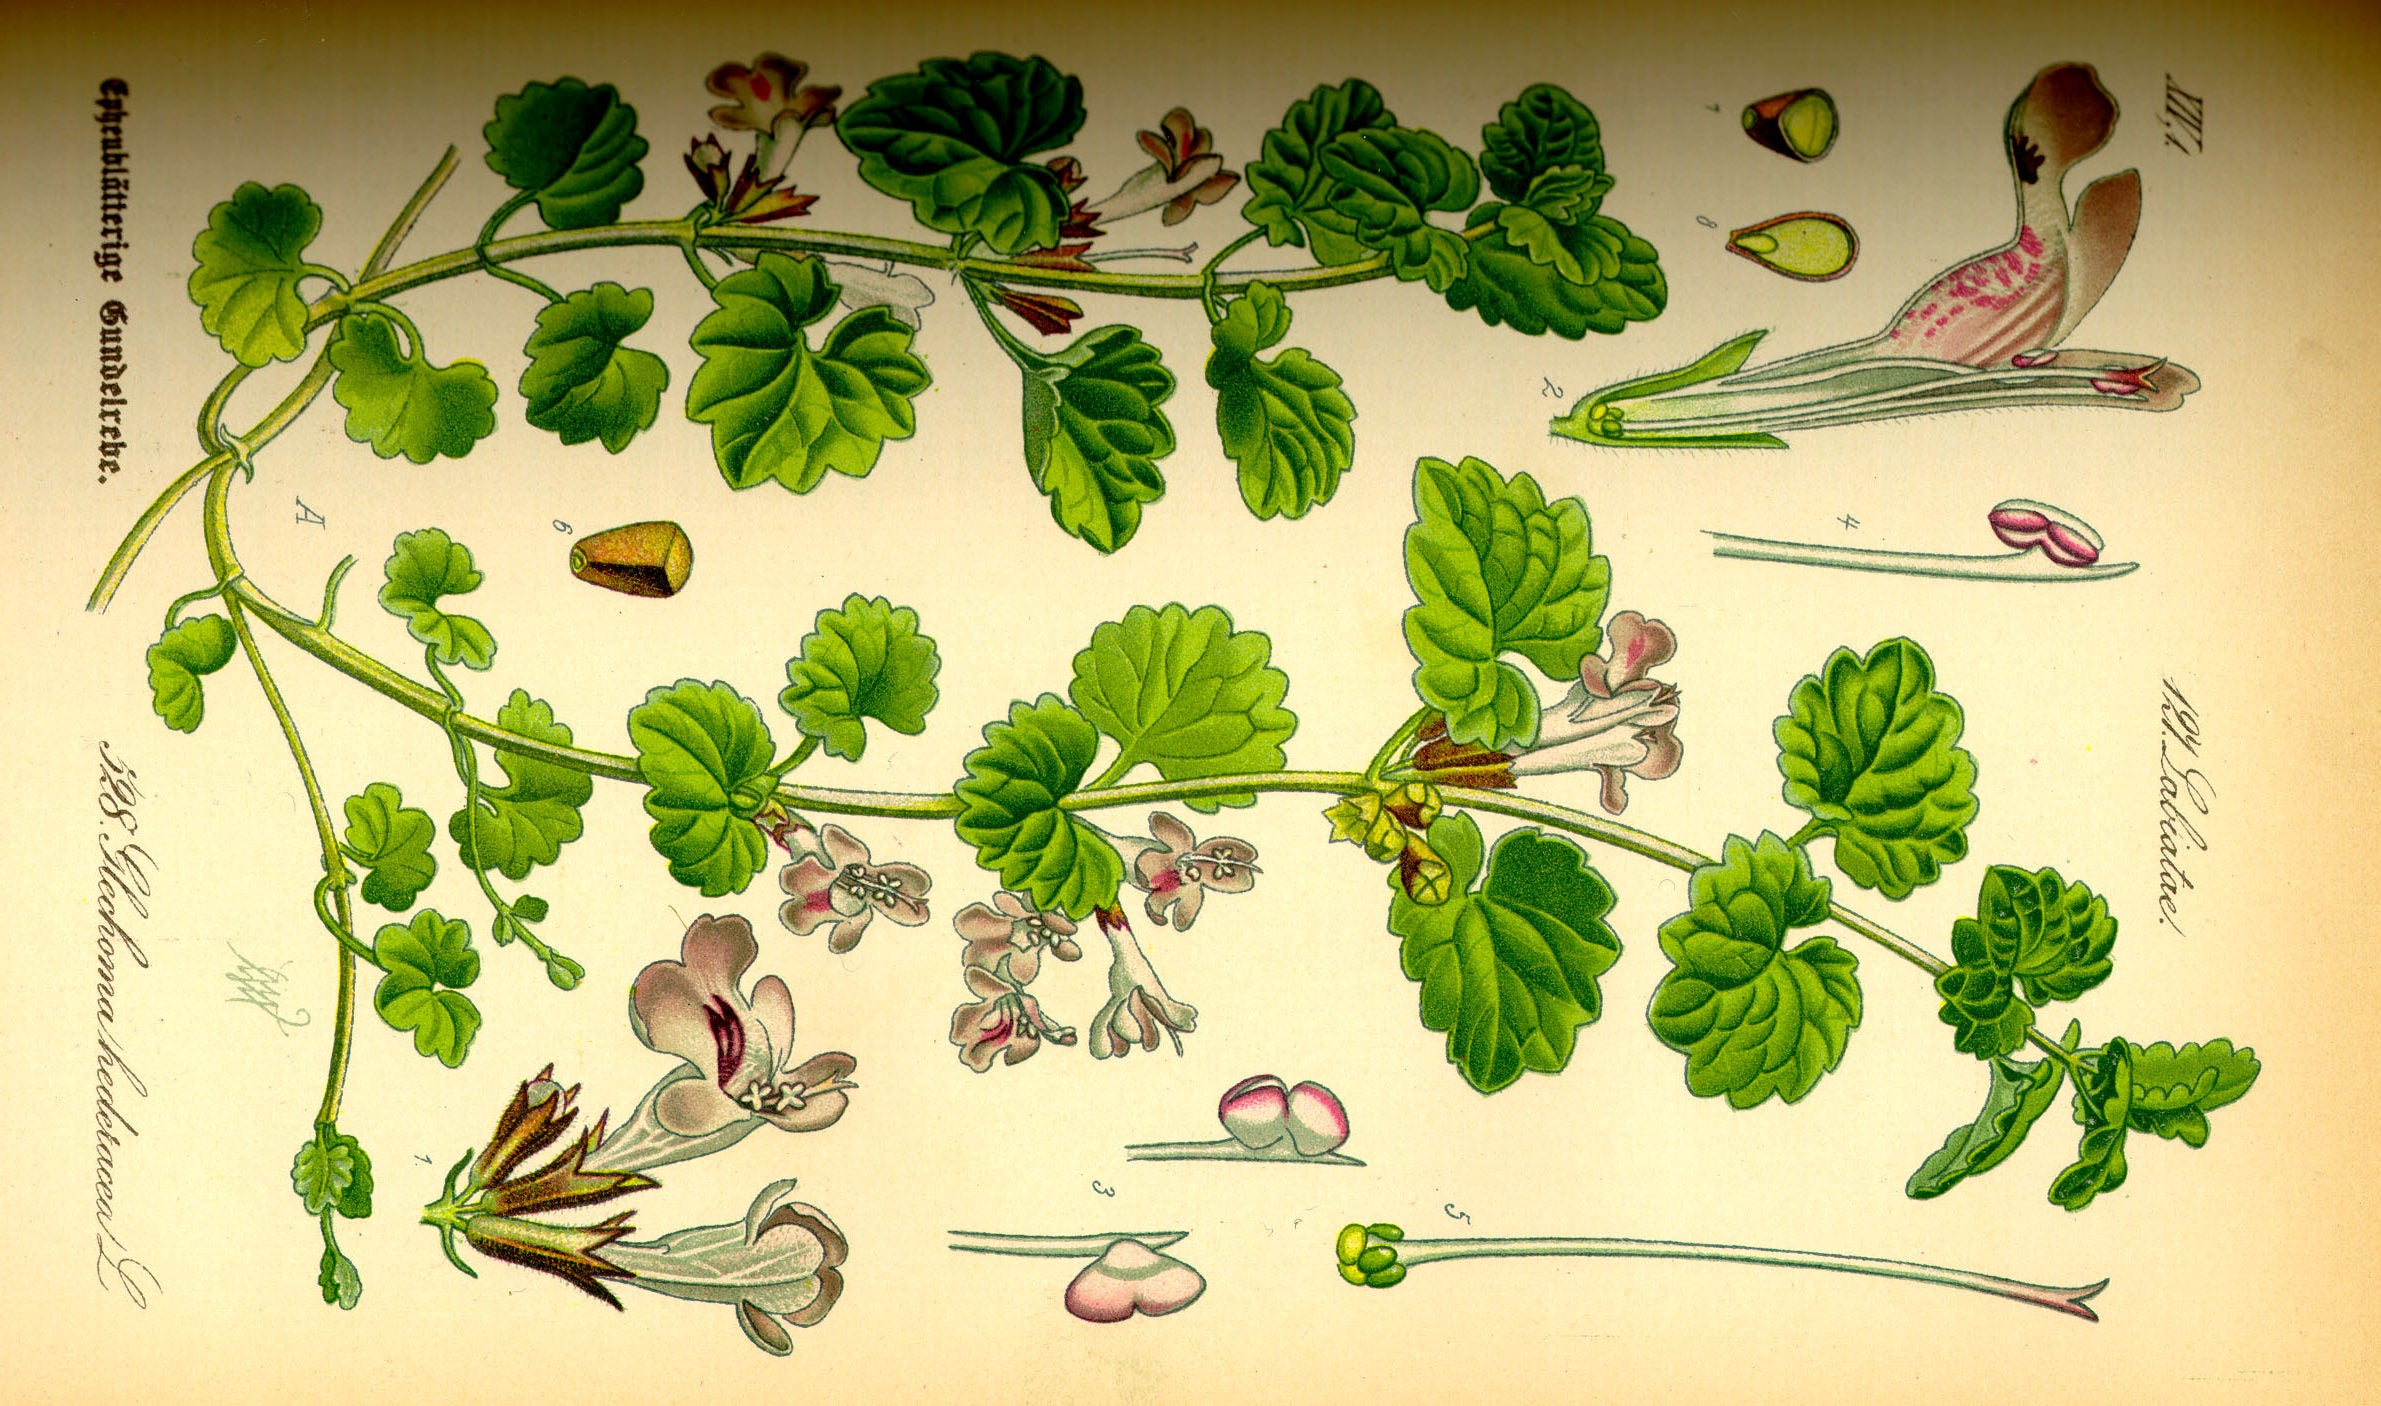 Introducing Glechoma hederacea, the most surprising ingredient to elevate a Gin and Tonic